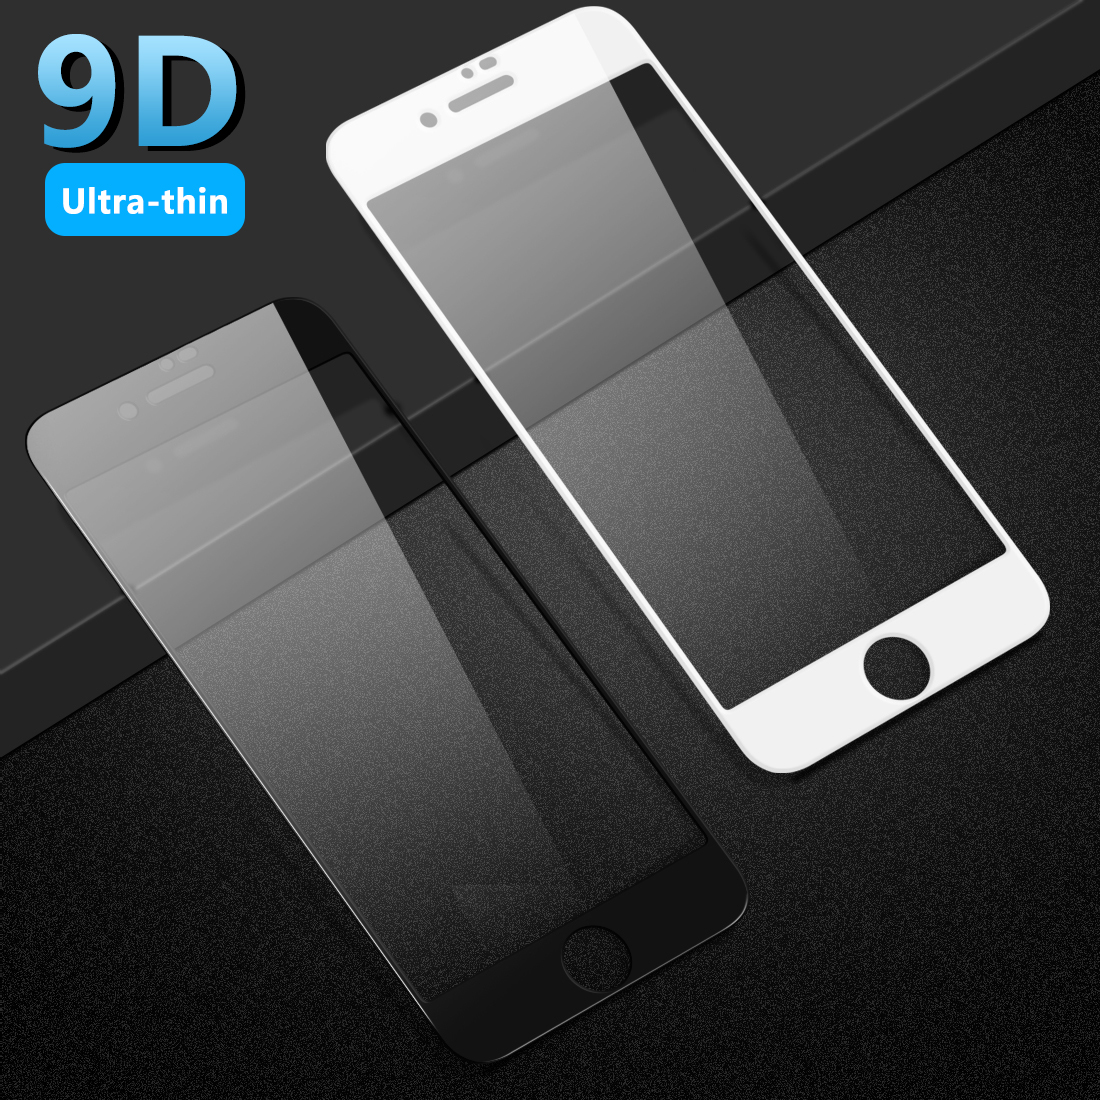 9D tempered glass film for Iphone 8 full coverd protector screen protector glass For Iphone 8 Plus in Phone Screen Protectors from Cellphones Telecommunications